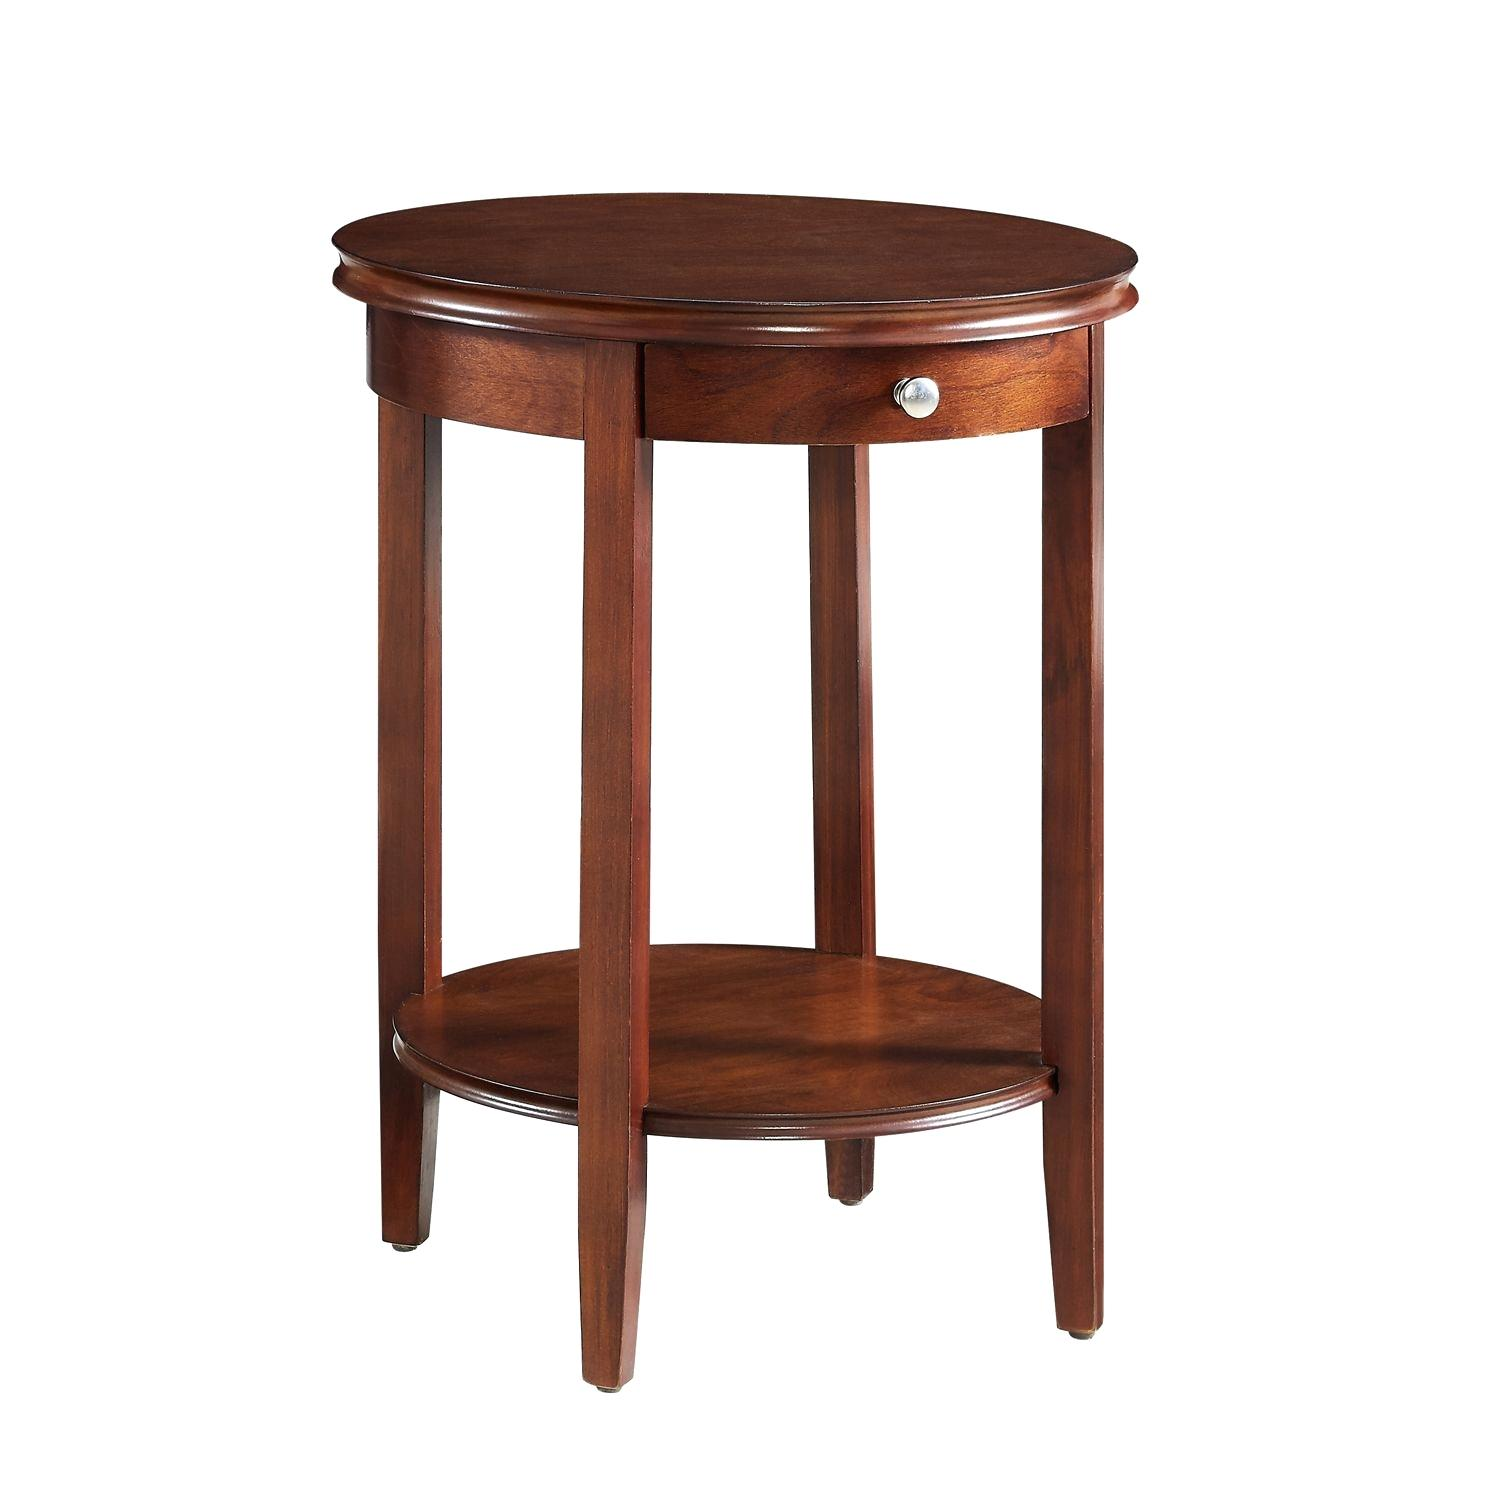 save this item pier accent tables elba mosaic table chairside end small brass coffee fruit cocktail recipe rustic wine rack west elm coupon code concrete wood half round bedside